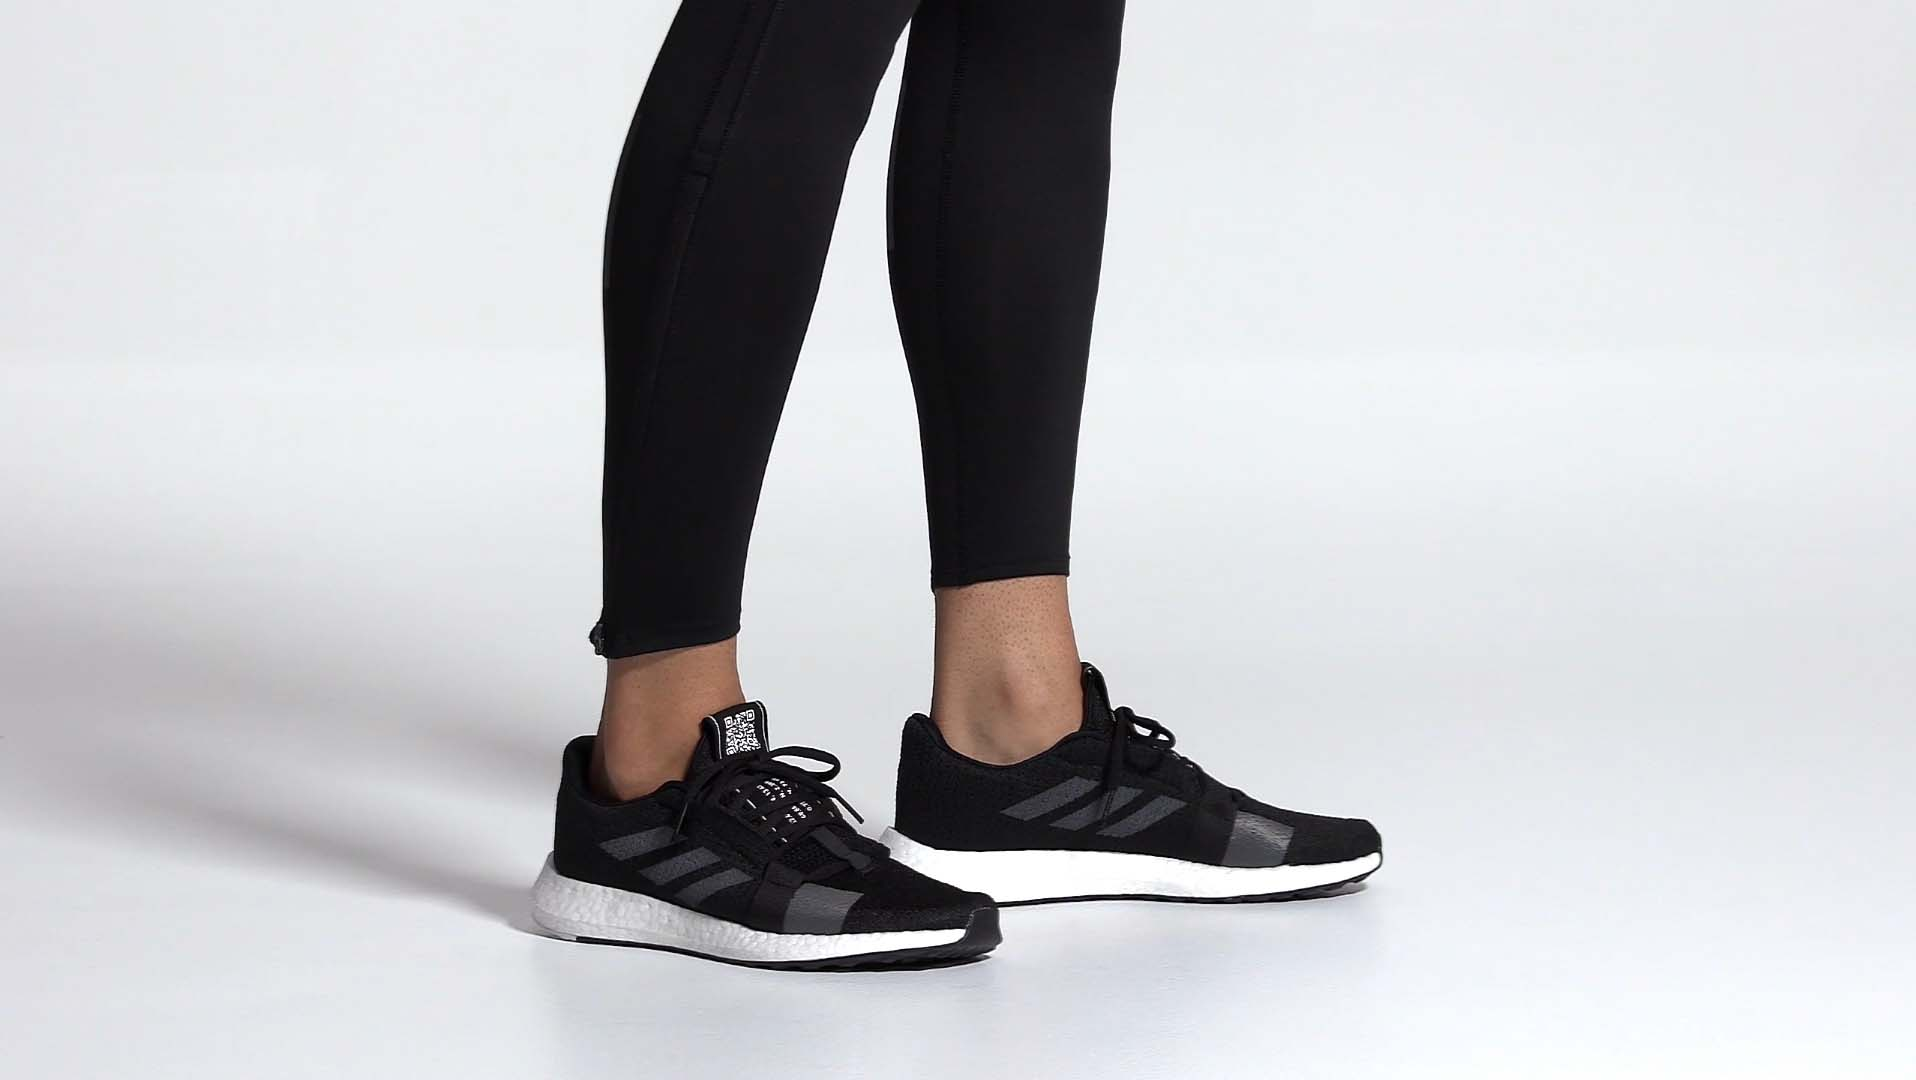 Adidas SenseBoost Running Shoes